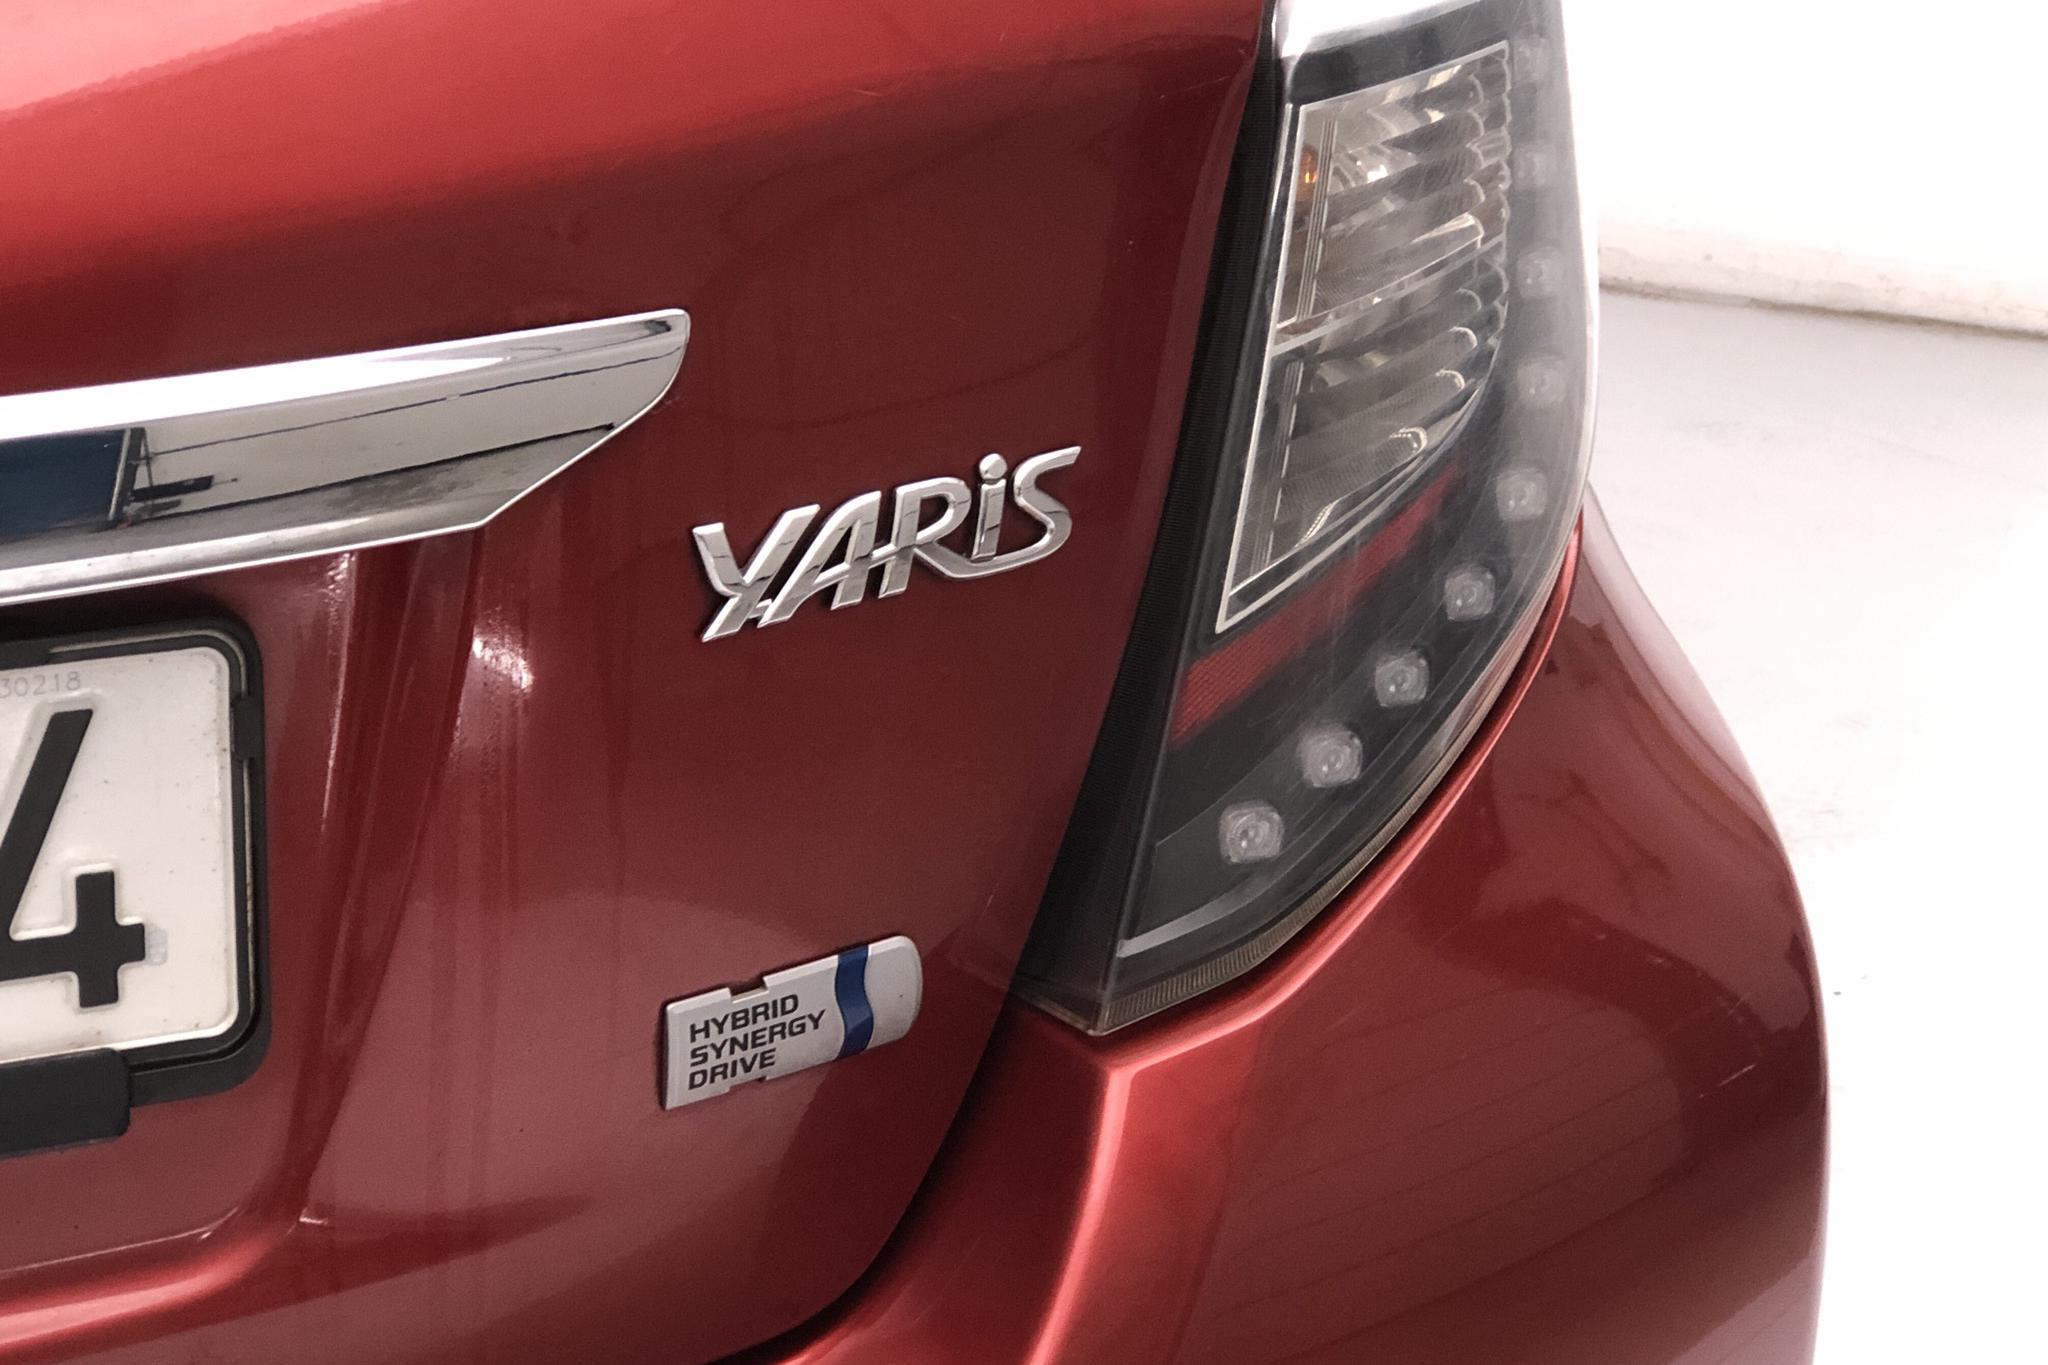 Toyota Yaris 1.5 HSD 5dr (75hk) - 163 580 km - Automatic - red - 2013